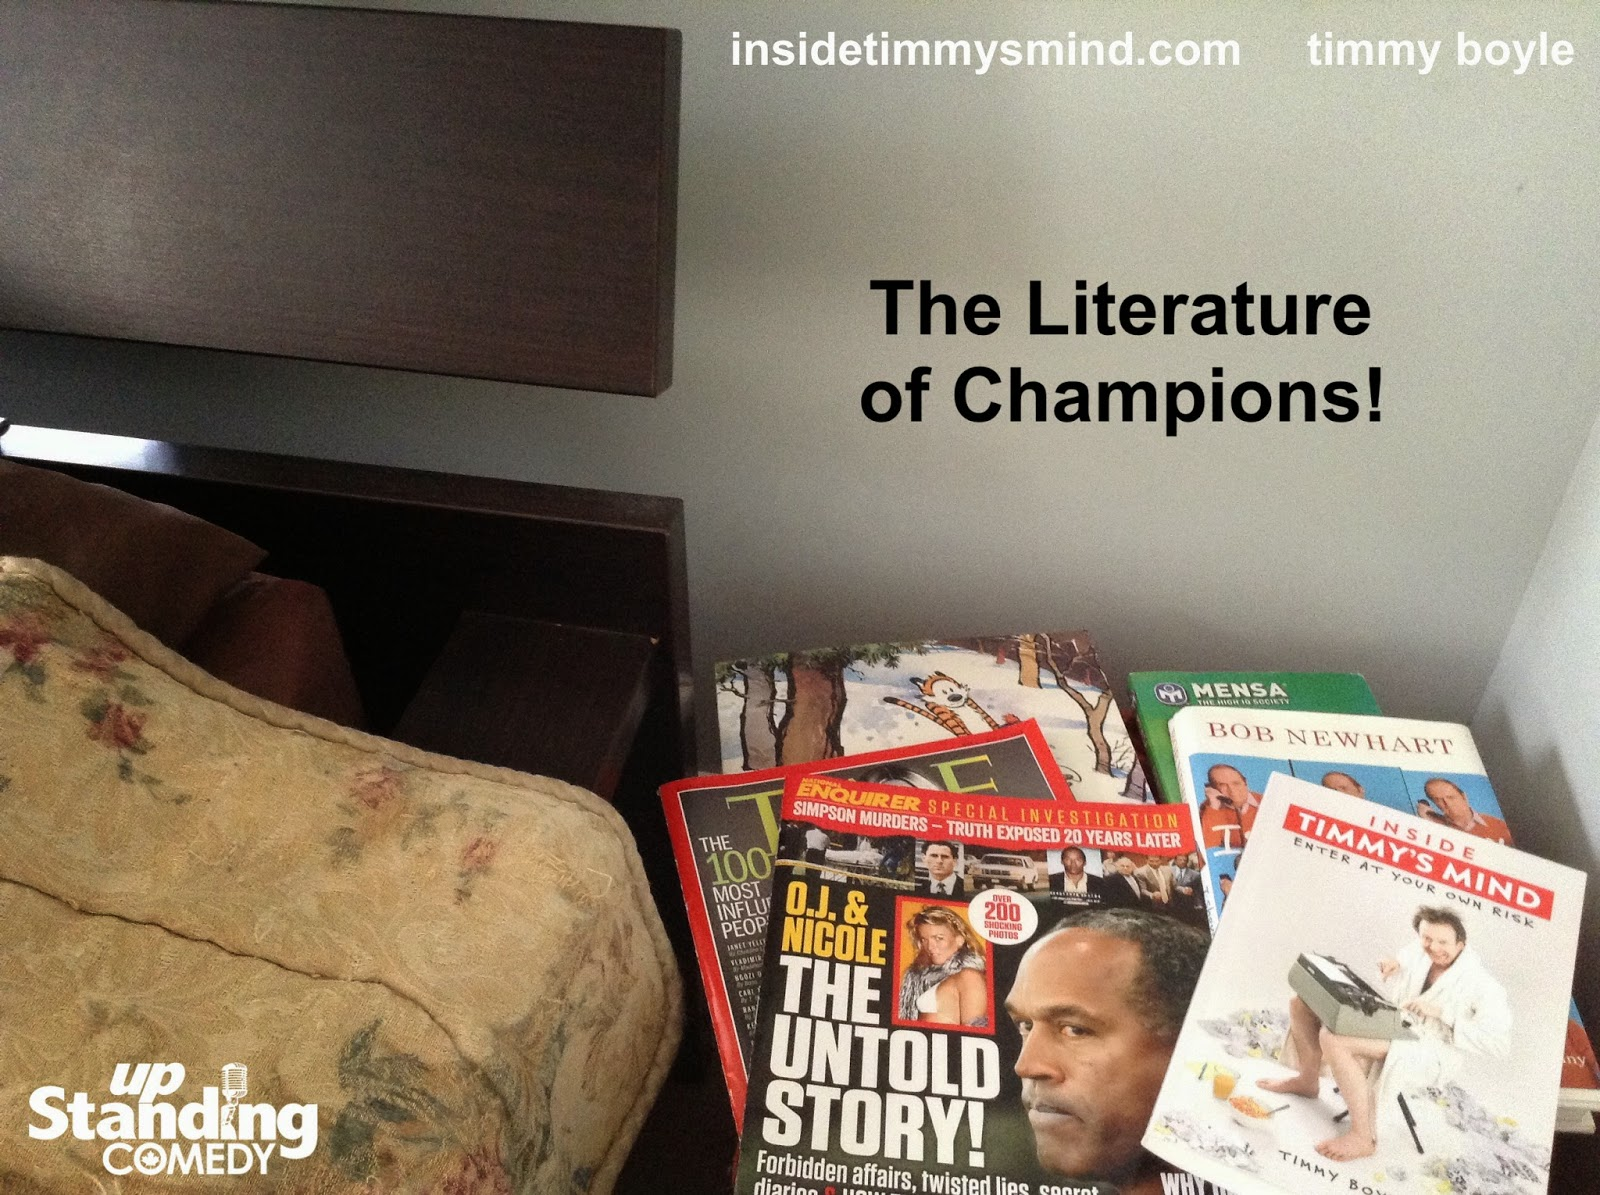 Inside Timmy's Mind - The Literature of Champions